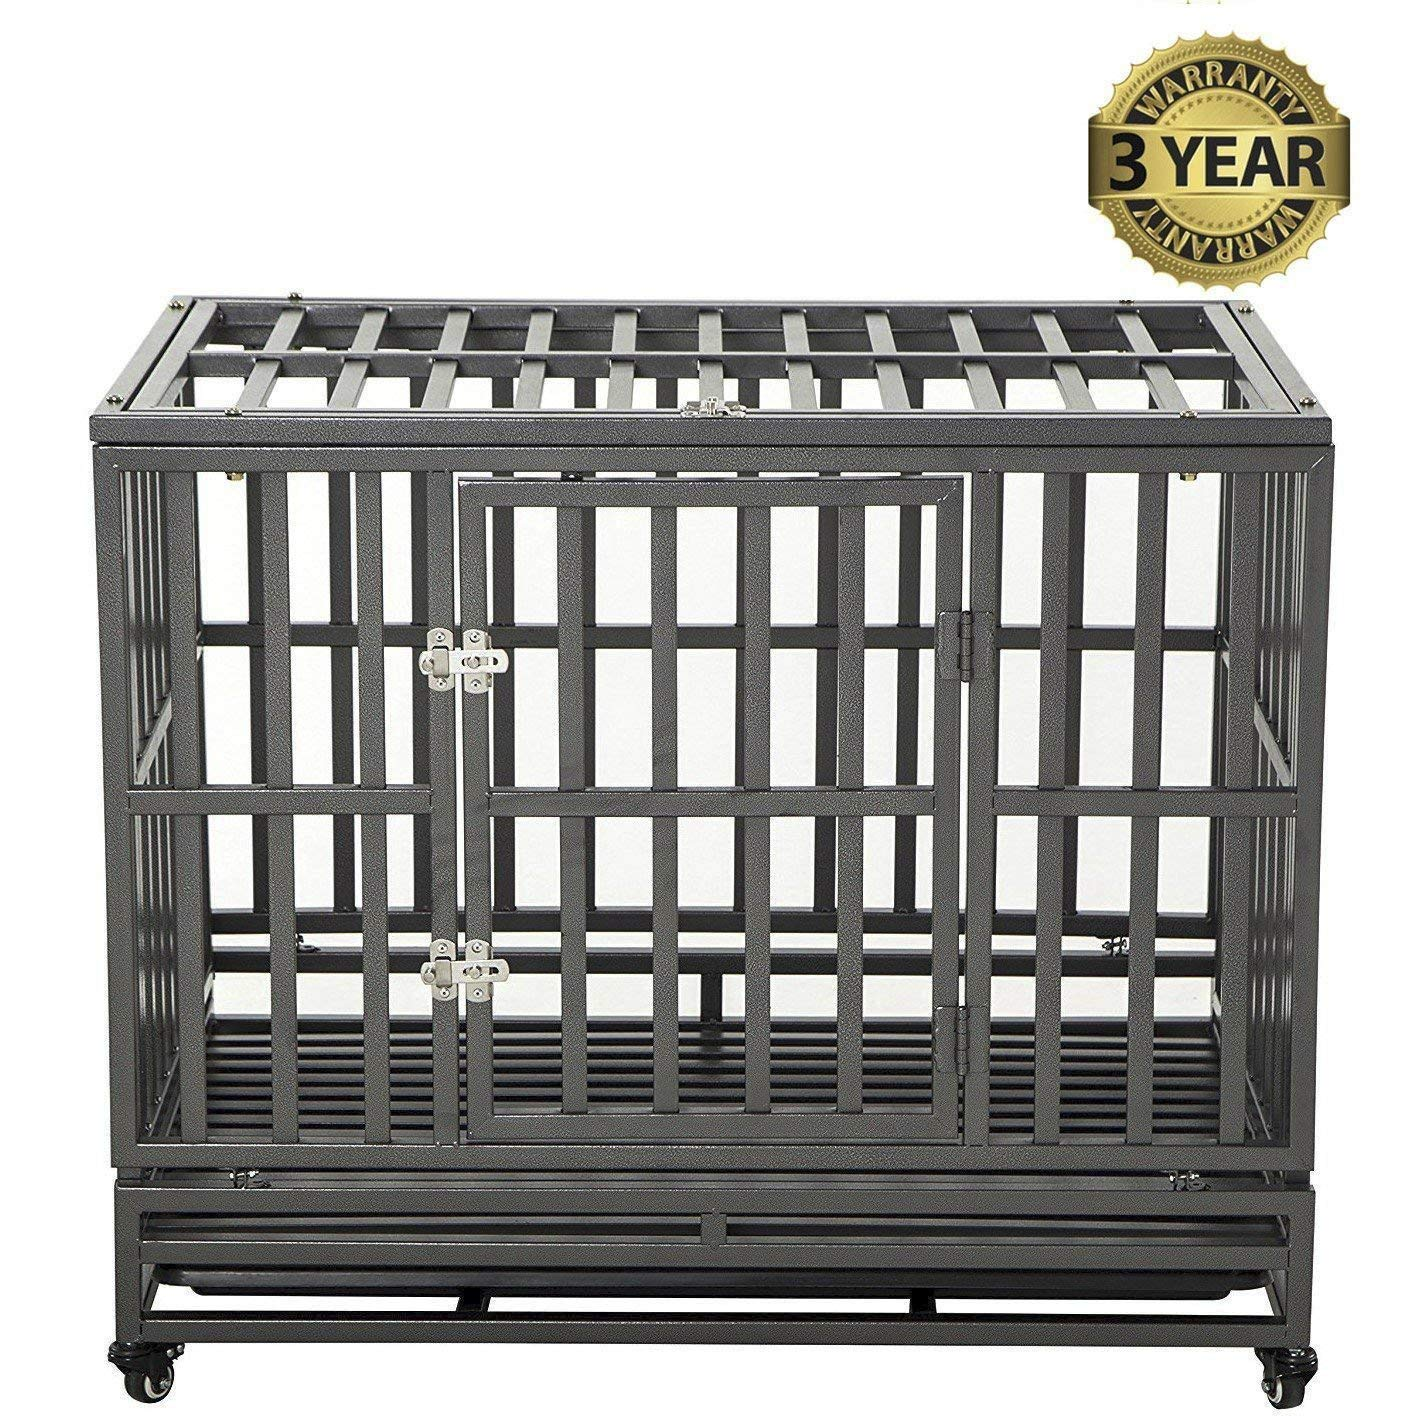 Black 96.52 cm Black 96.52 cm LUCKUP 38 Inch Heavy Duty Dog Cage Strong Metal Kennel and Crate for Large Dogs,Easy to Assemble Pet Playpen with Four Wheels,Black